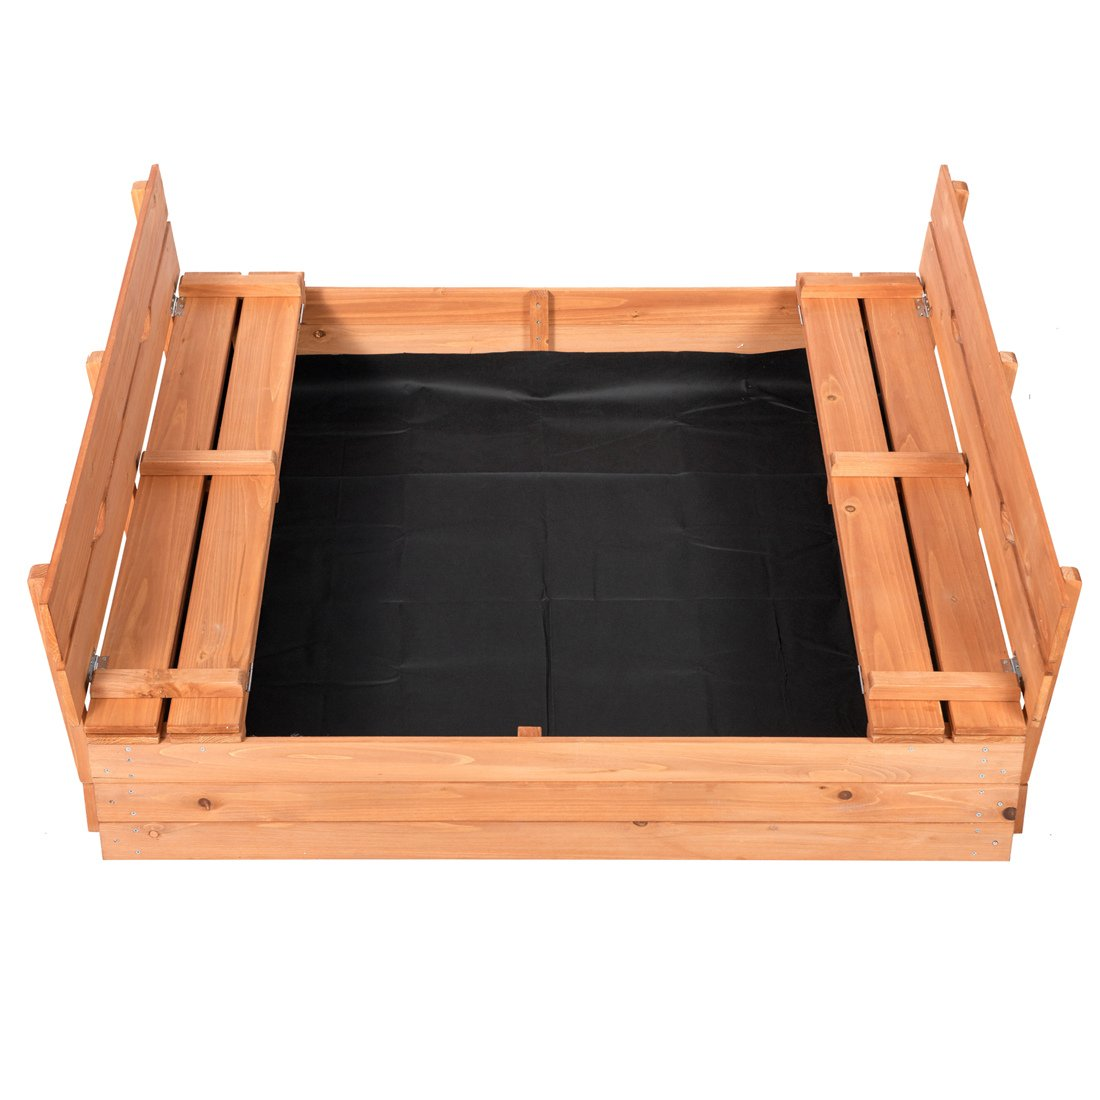 Good Life Outdoor Sandbox with Covered and Bench Seats Kids Play Sand for Sand Box Toys Wood Natural Color 47'' x 47'' Size by Good Life USA (Image #2)